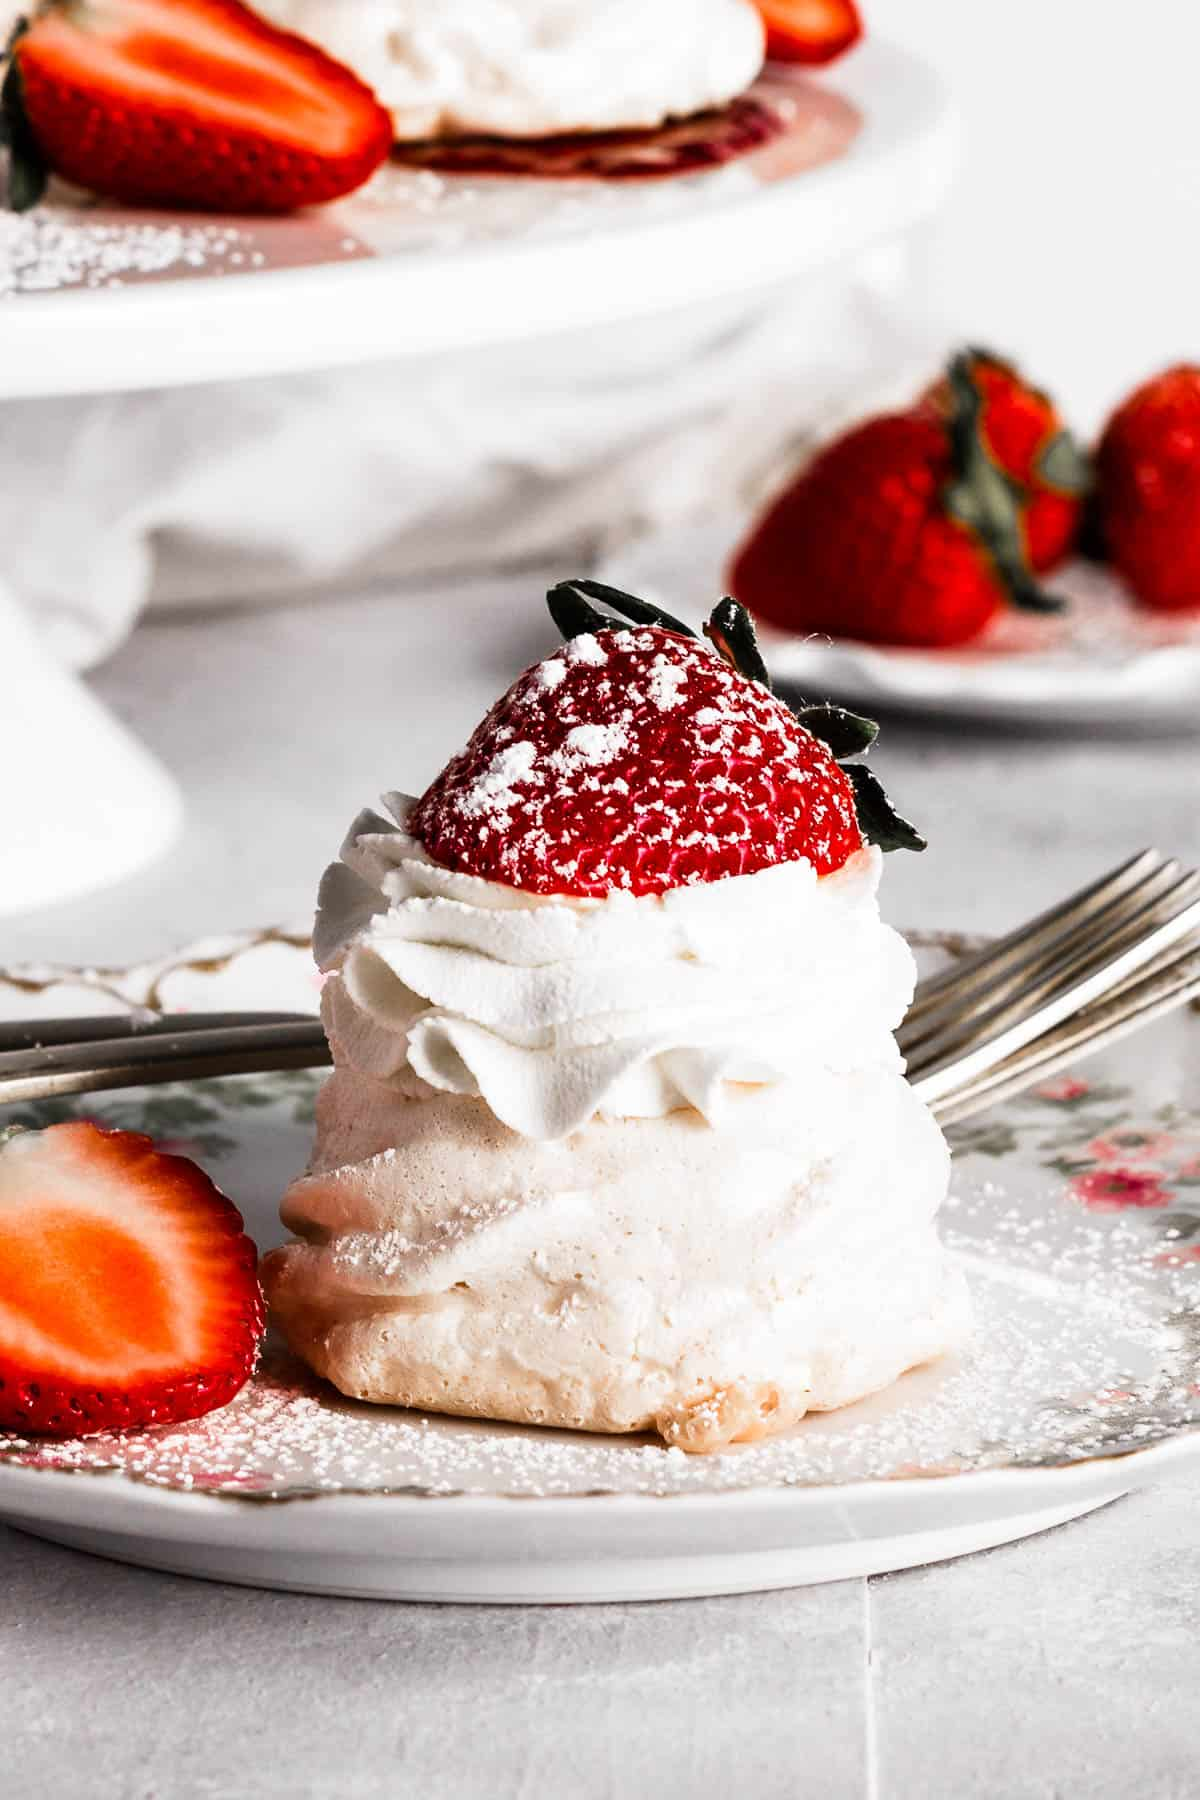 A mini pavlova on a plate with strawberries